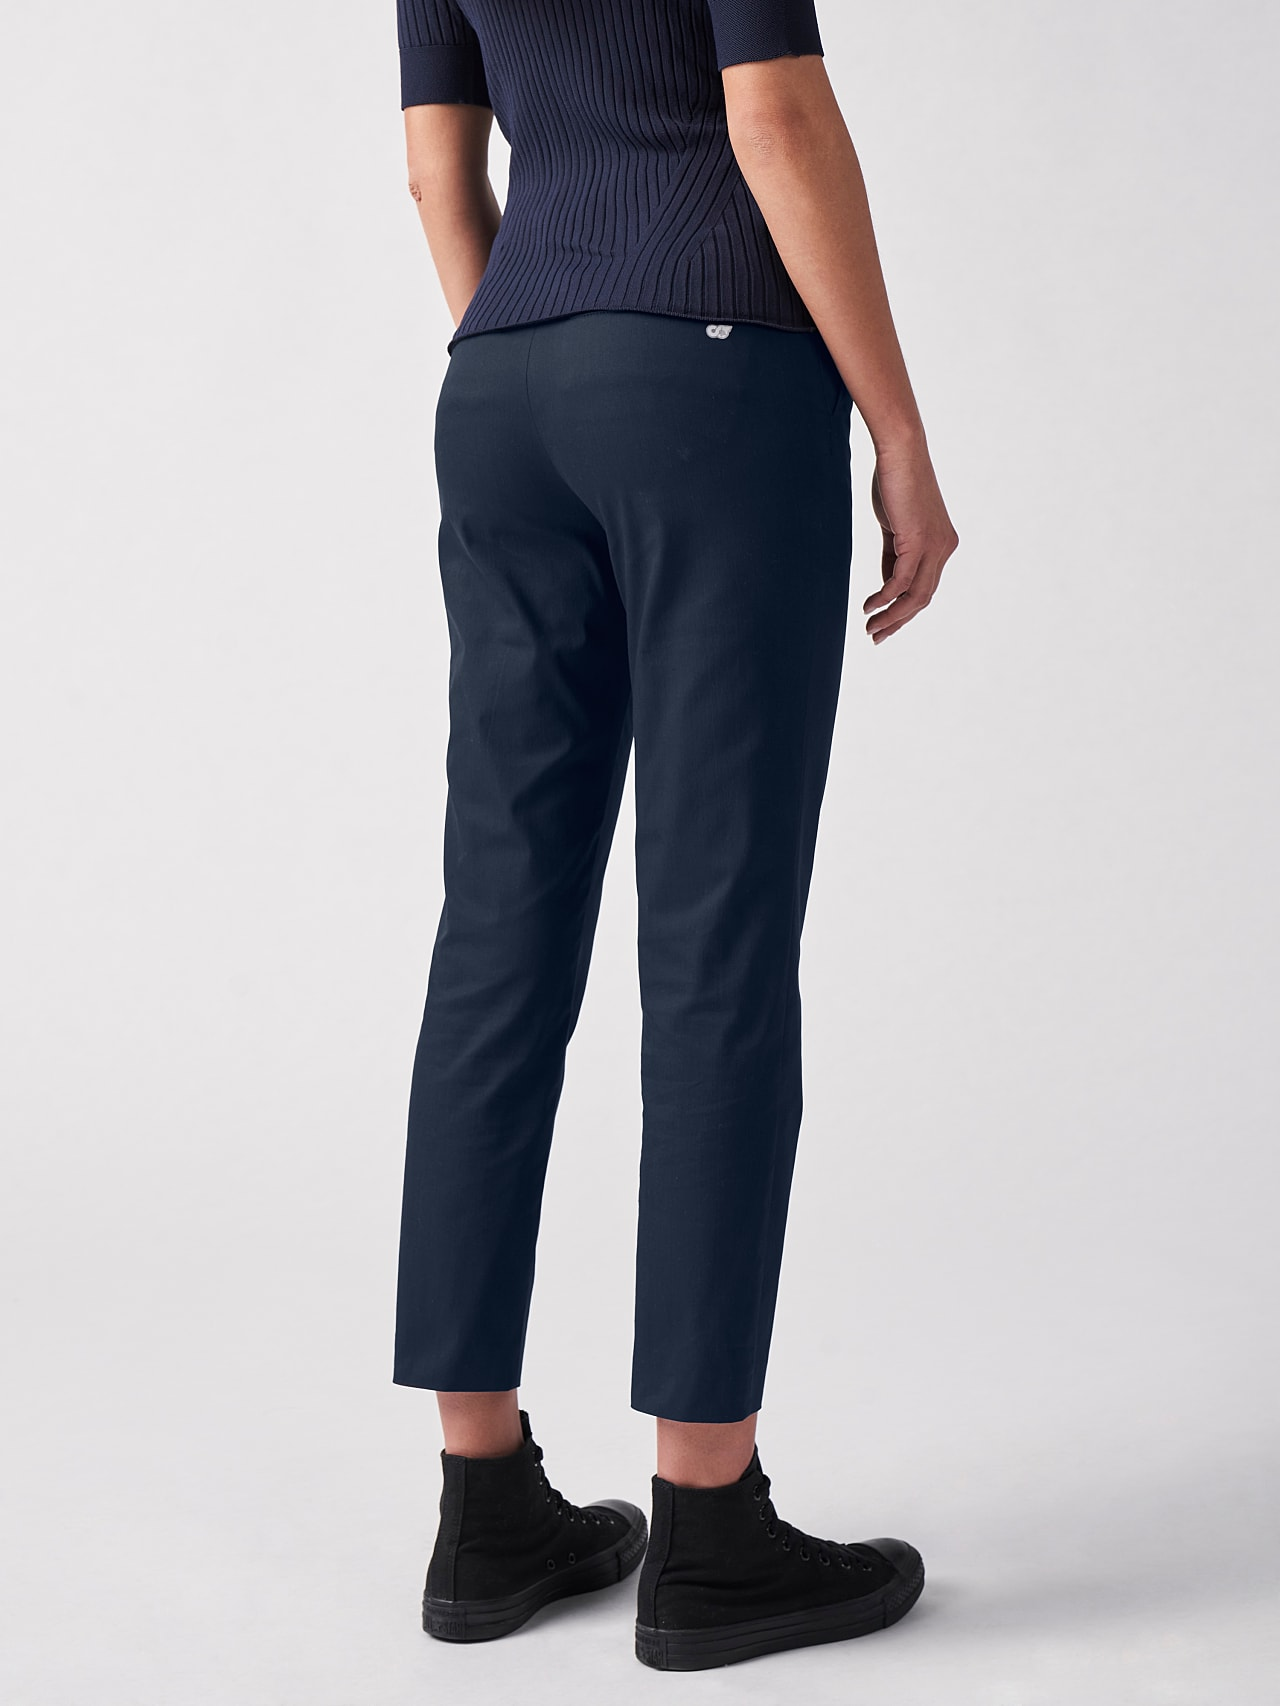 PEPPI V1.Y5.01 Water-Repellent Cotton-Twill Chino navy Front Main Alpha Tauri